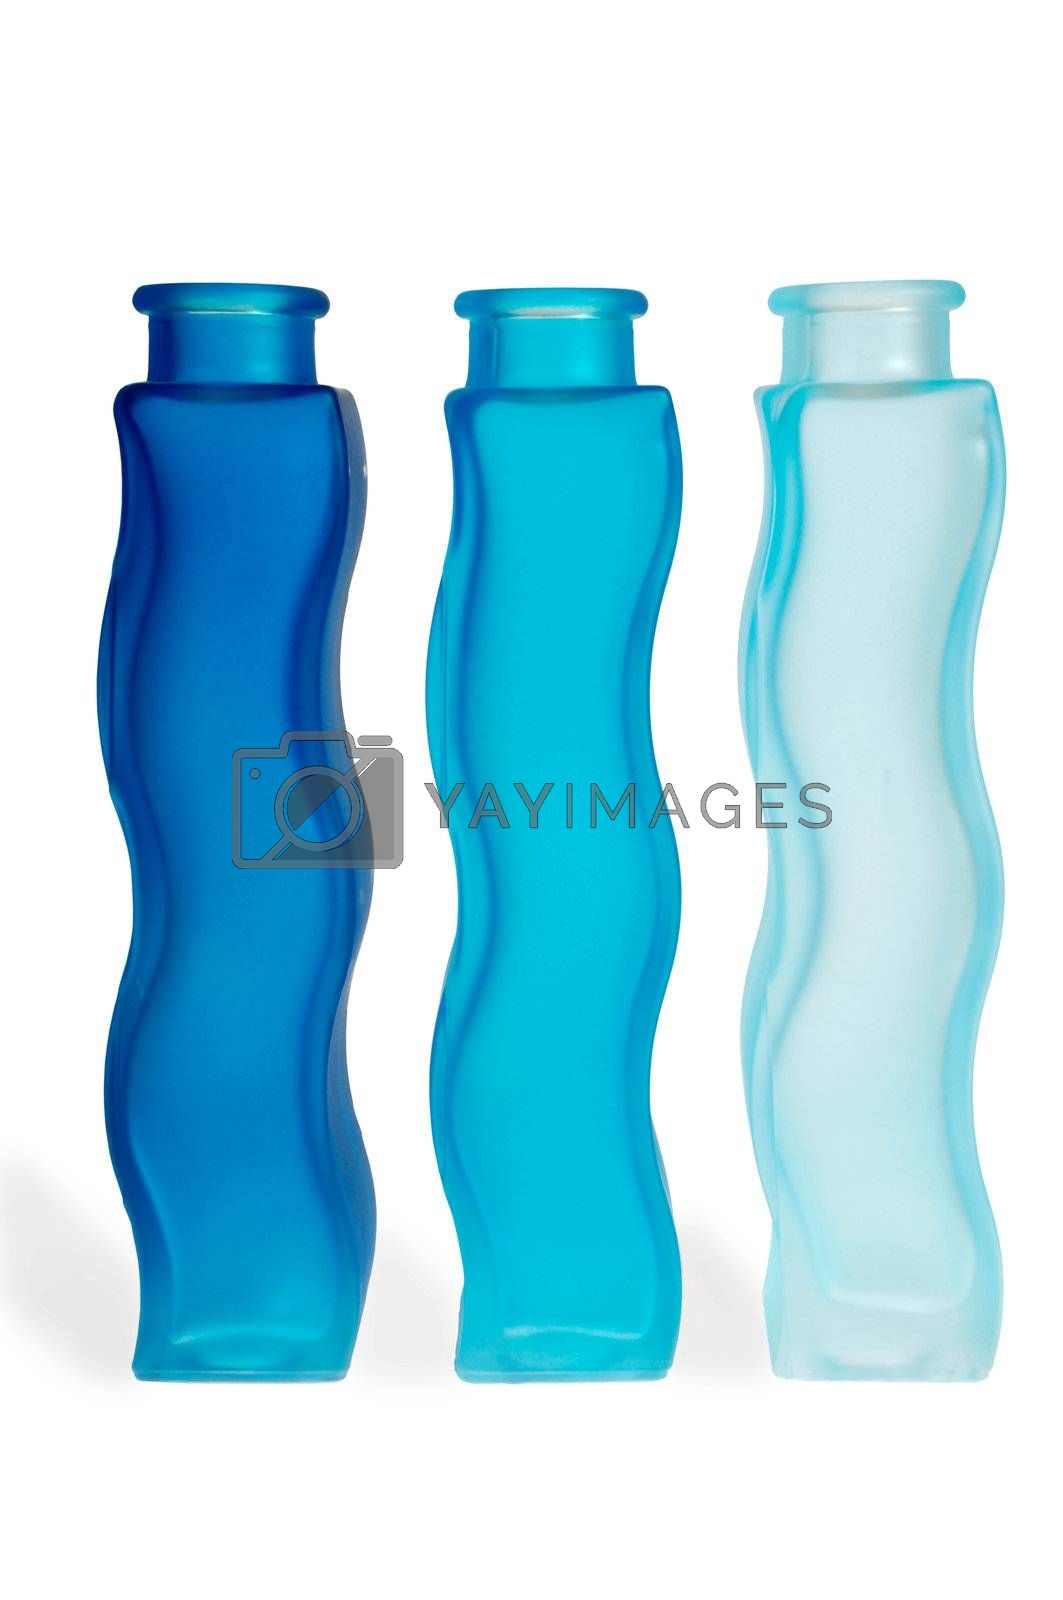 Royalty free image of Blue bottles by cfoto